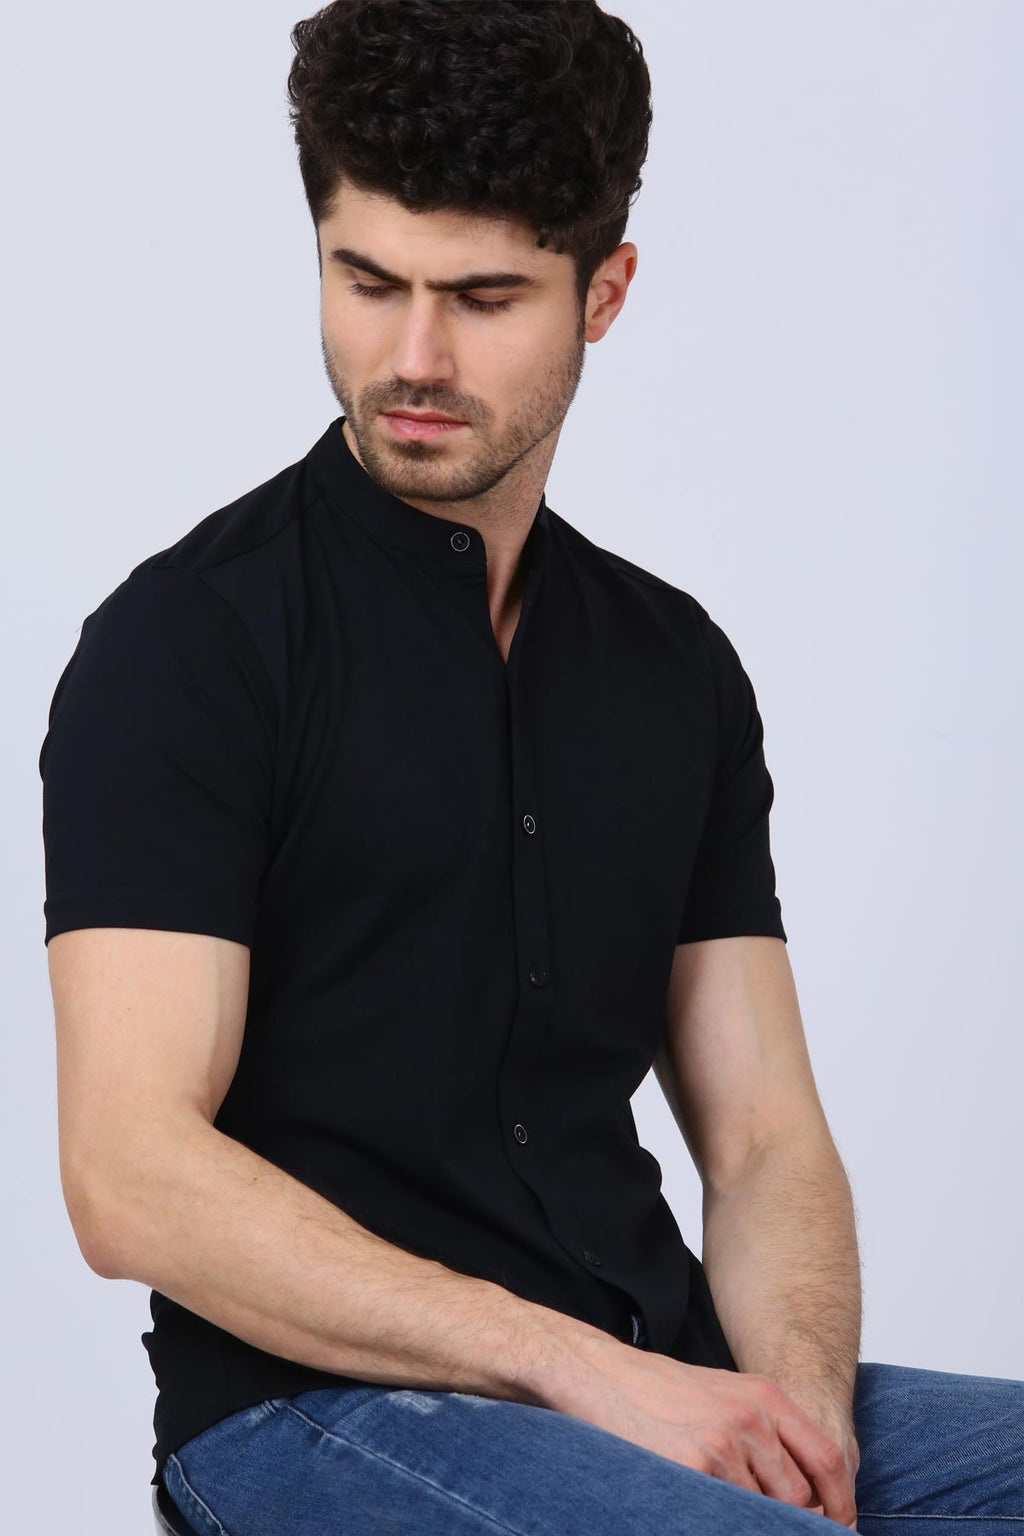 The Black Shirt